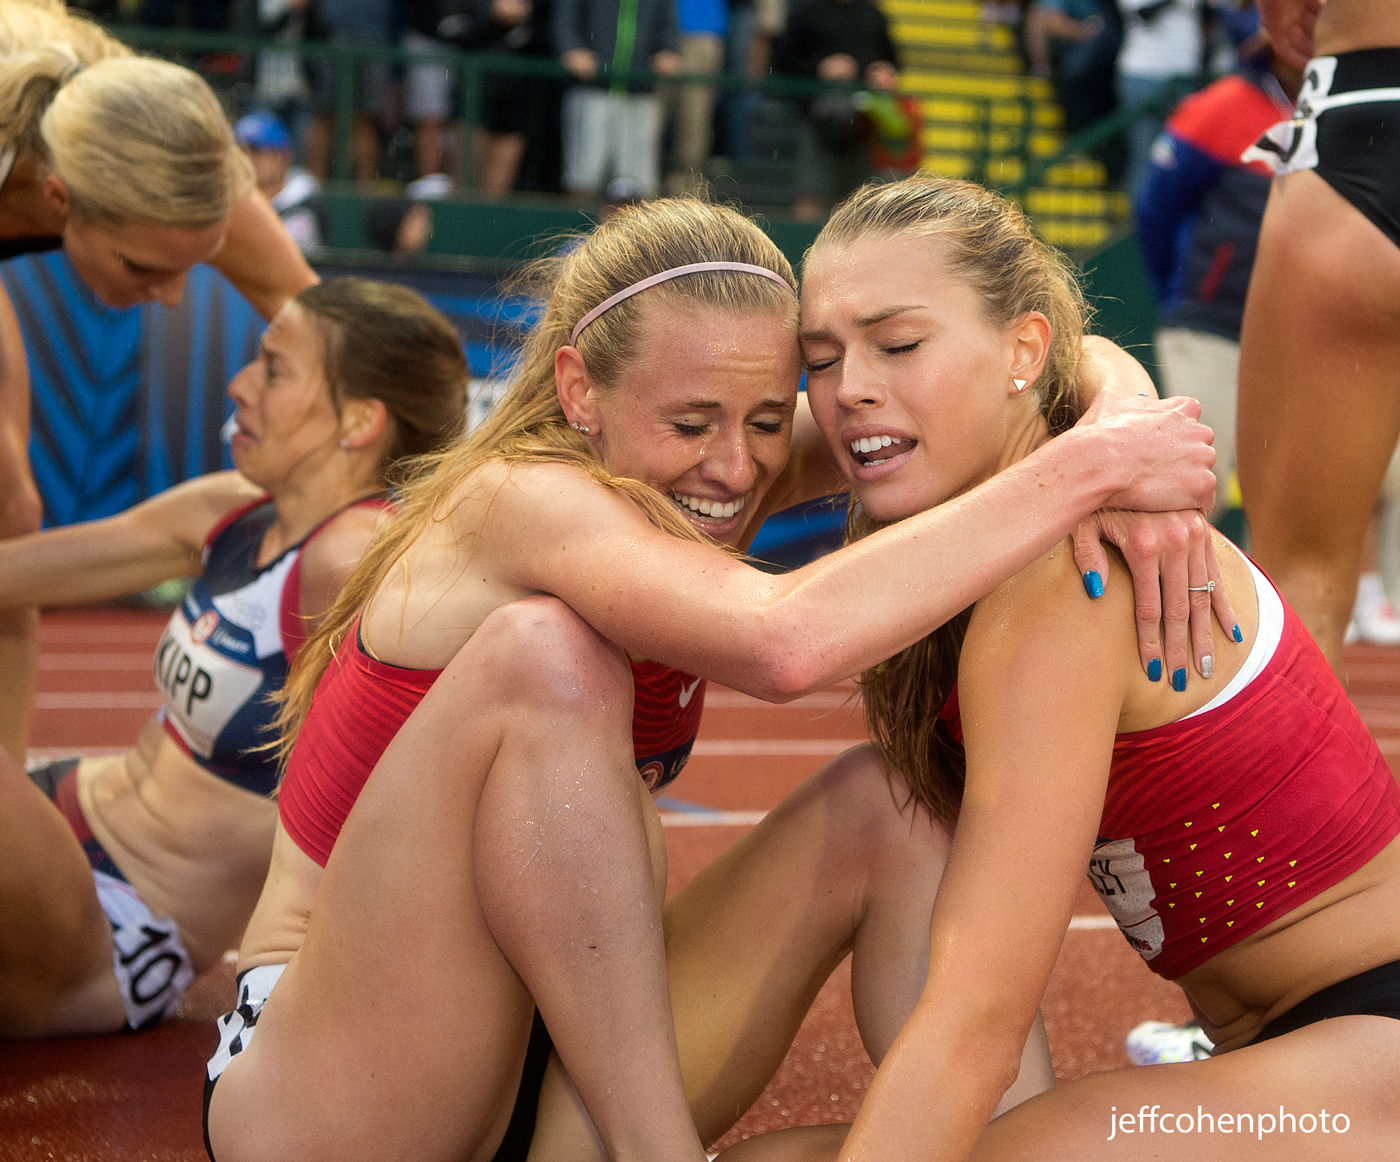 1r2016_oly_trials_day_6_steeple_w_cry_finish_jeff_cohen_photo_21472_web.jpg